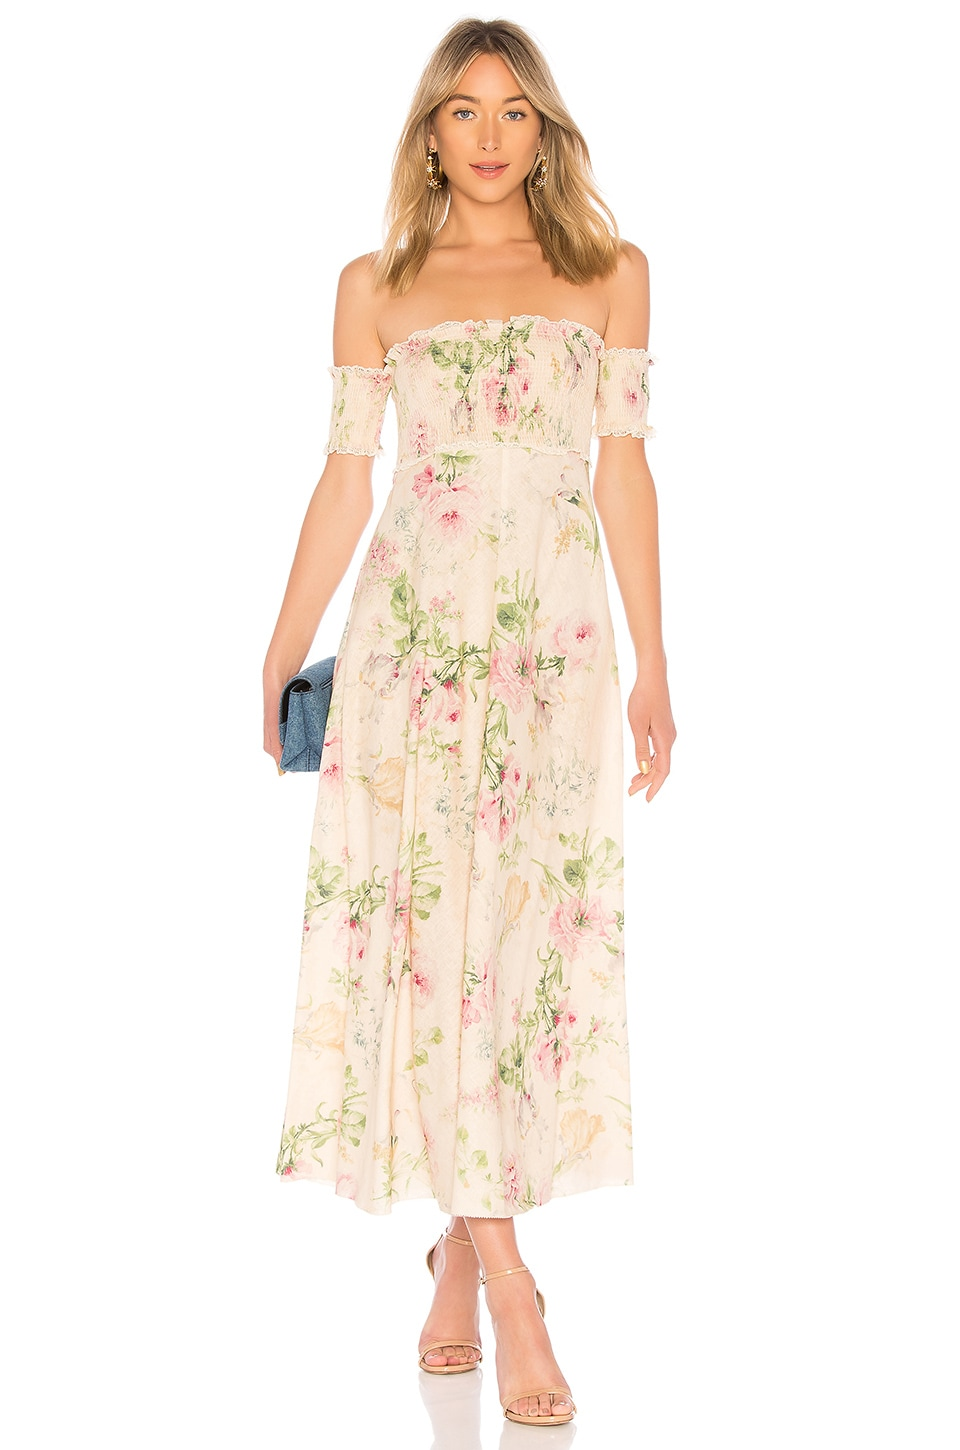 be42c4d74c3b4 Zimmermann Iris Shirred Bodice Maxi Dress in Cream Floral | REVOLVE